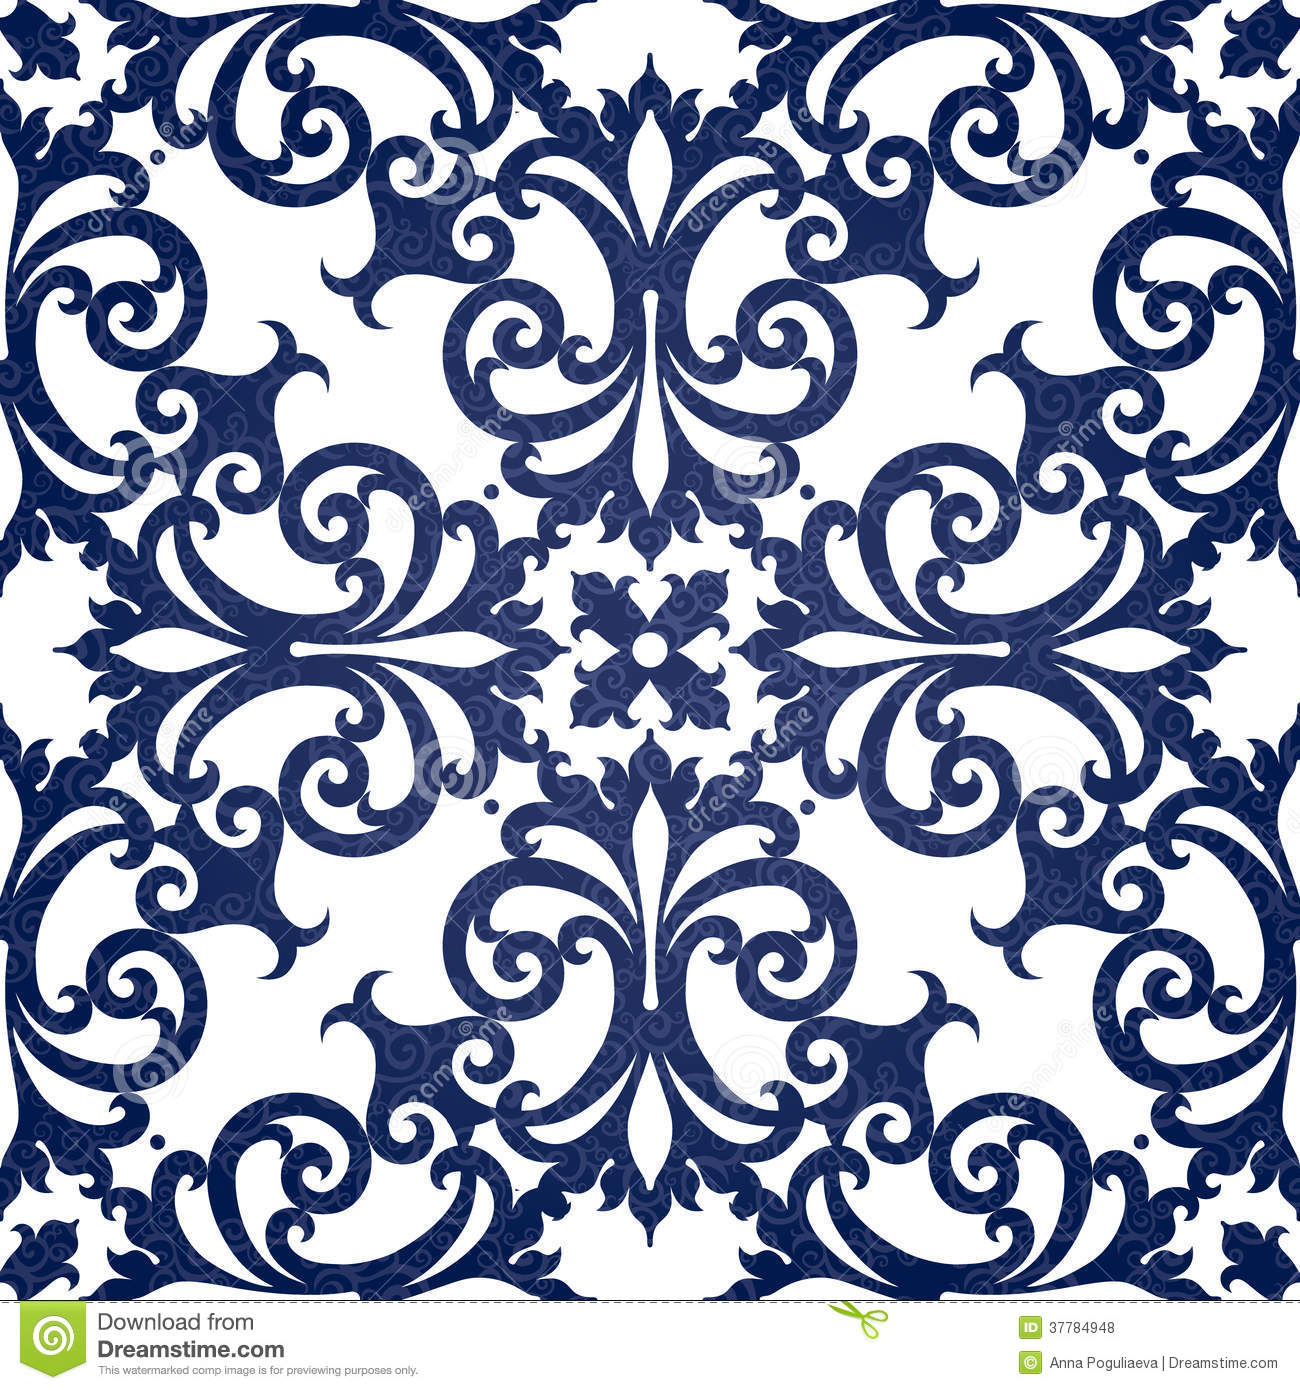 Vector Seamless Pattern With Swirls And Floral Motifs In